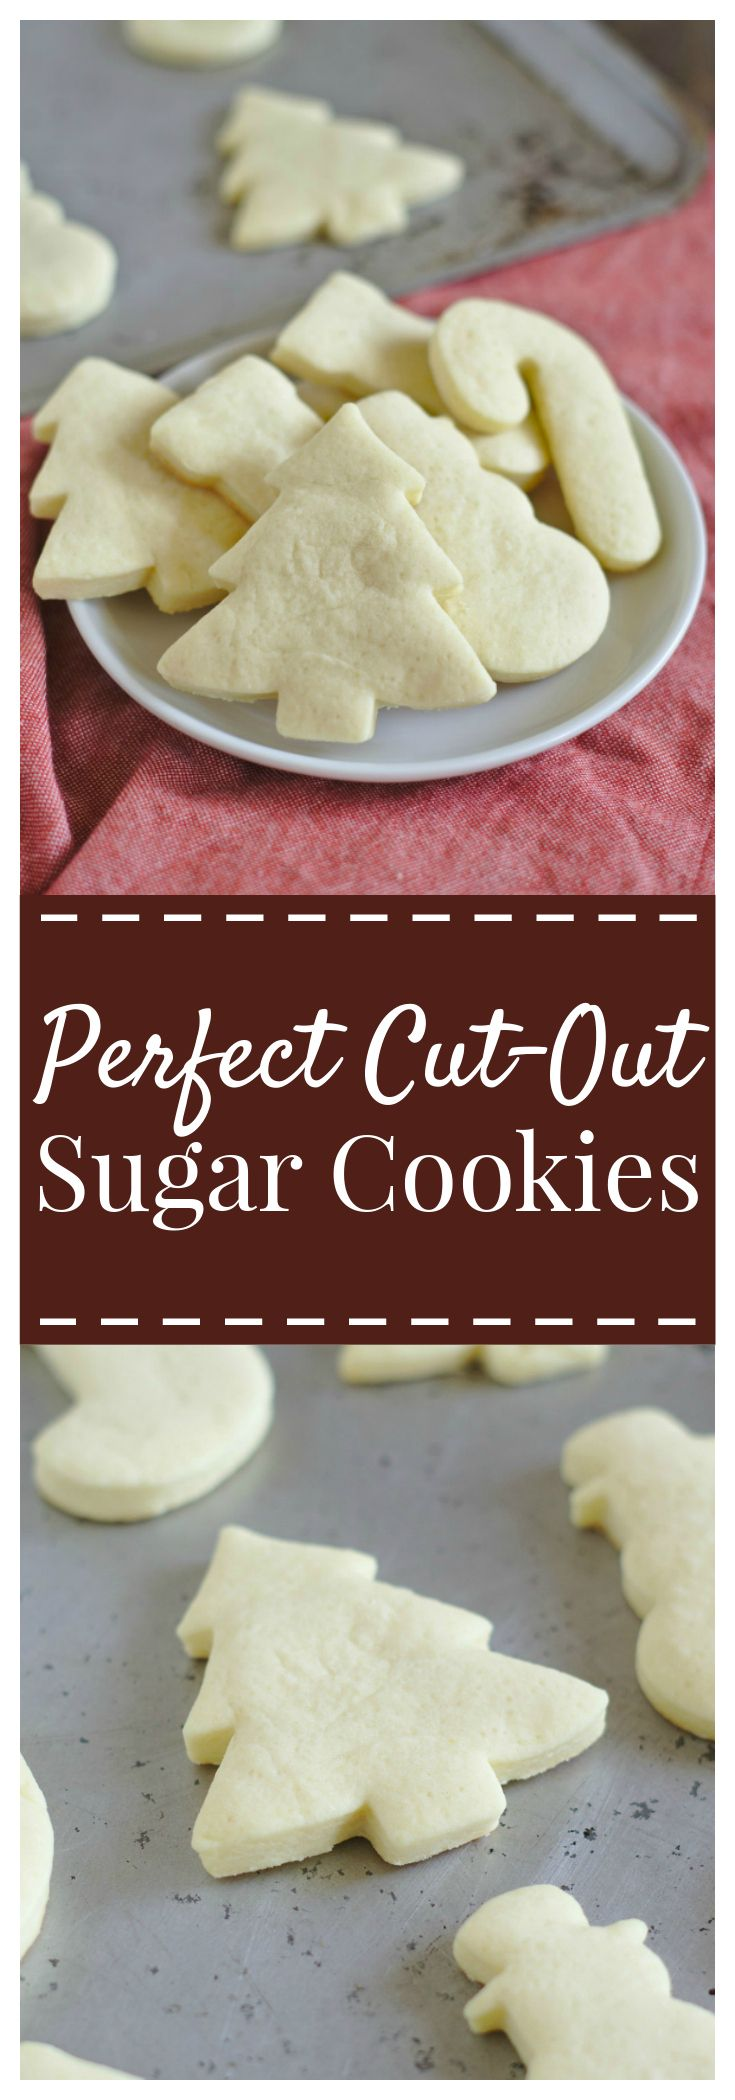 Cut-Out Sugar Cookies – A staple Christmas cookie recipe! Soft sugar cookies that keep their shape, perfect for decorating! #christmas #cookie #sugar #cutout